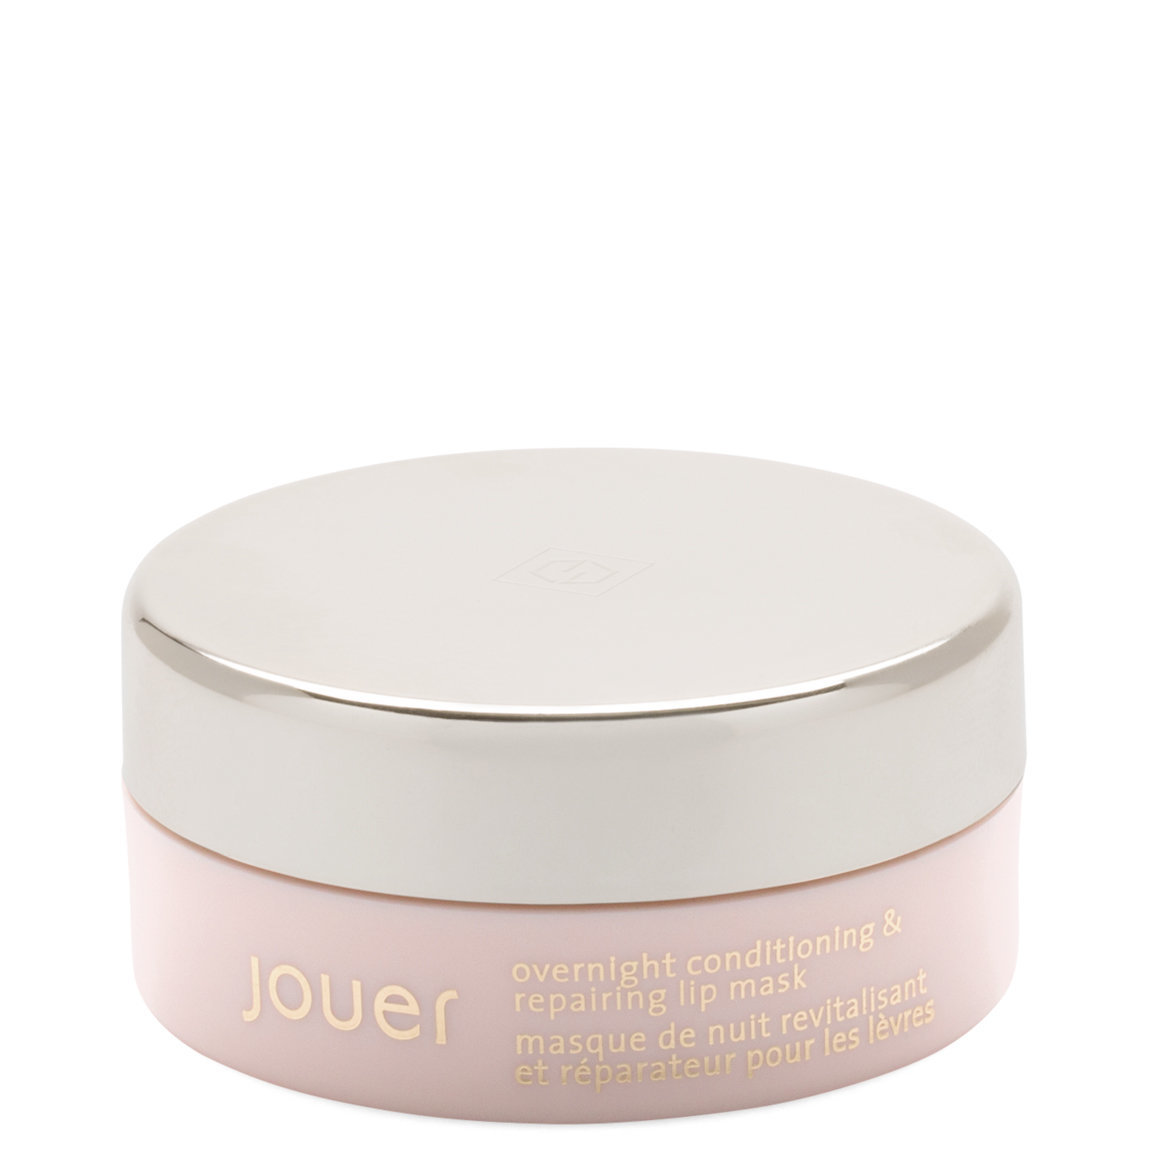 Jouer Cosmetics Overnight Conditioning & Repairing Lip Mask product smear.